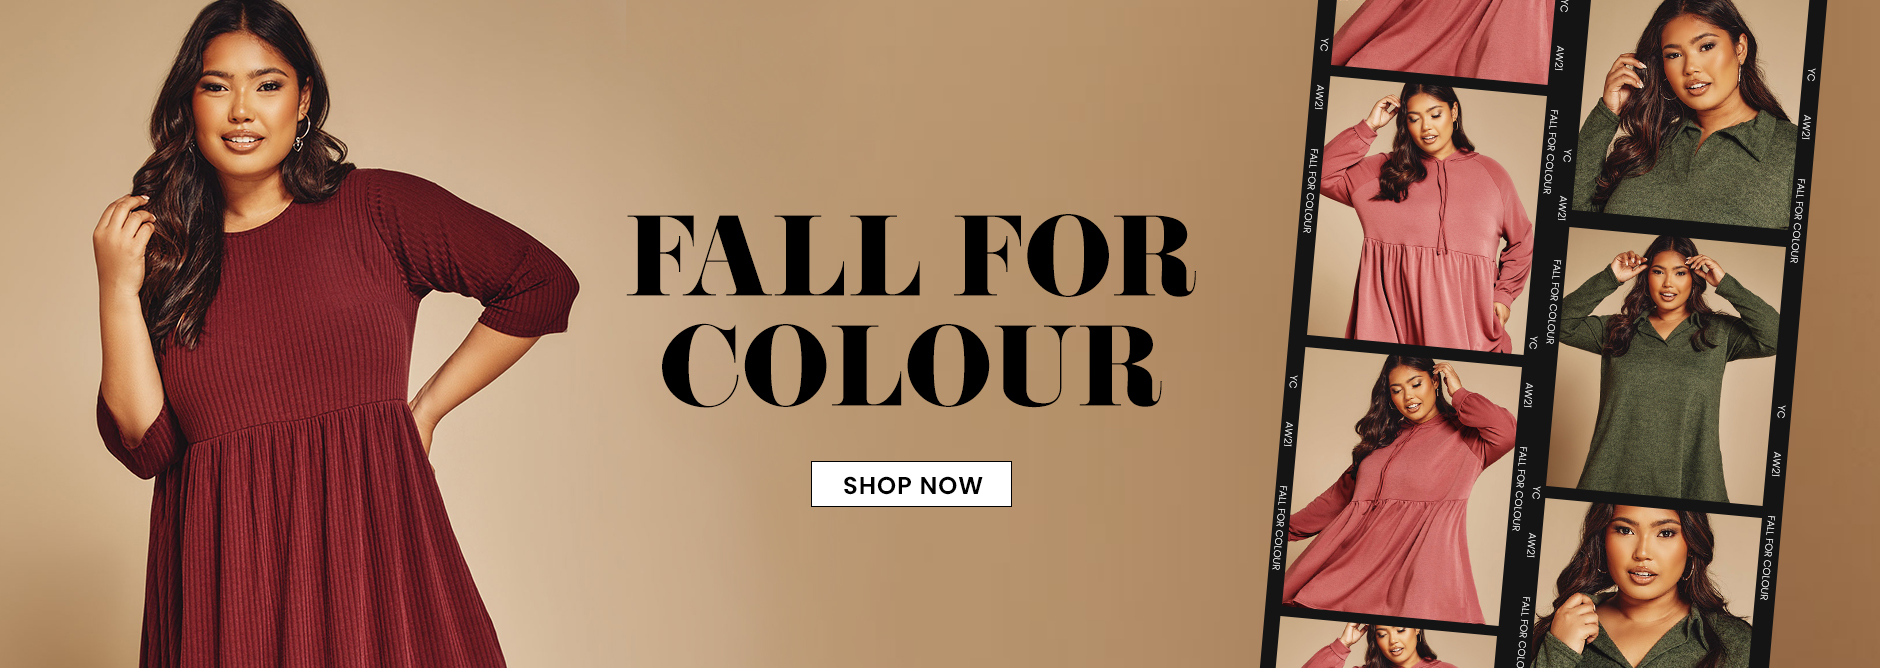 fall for colour